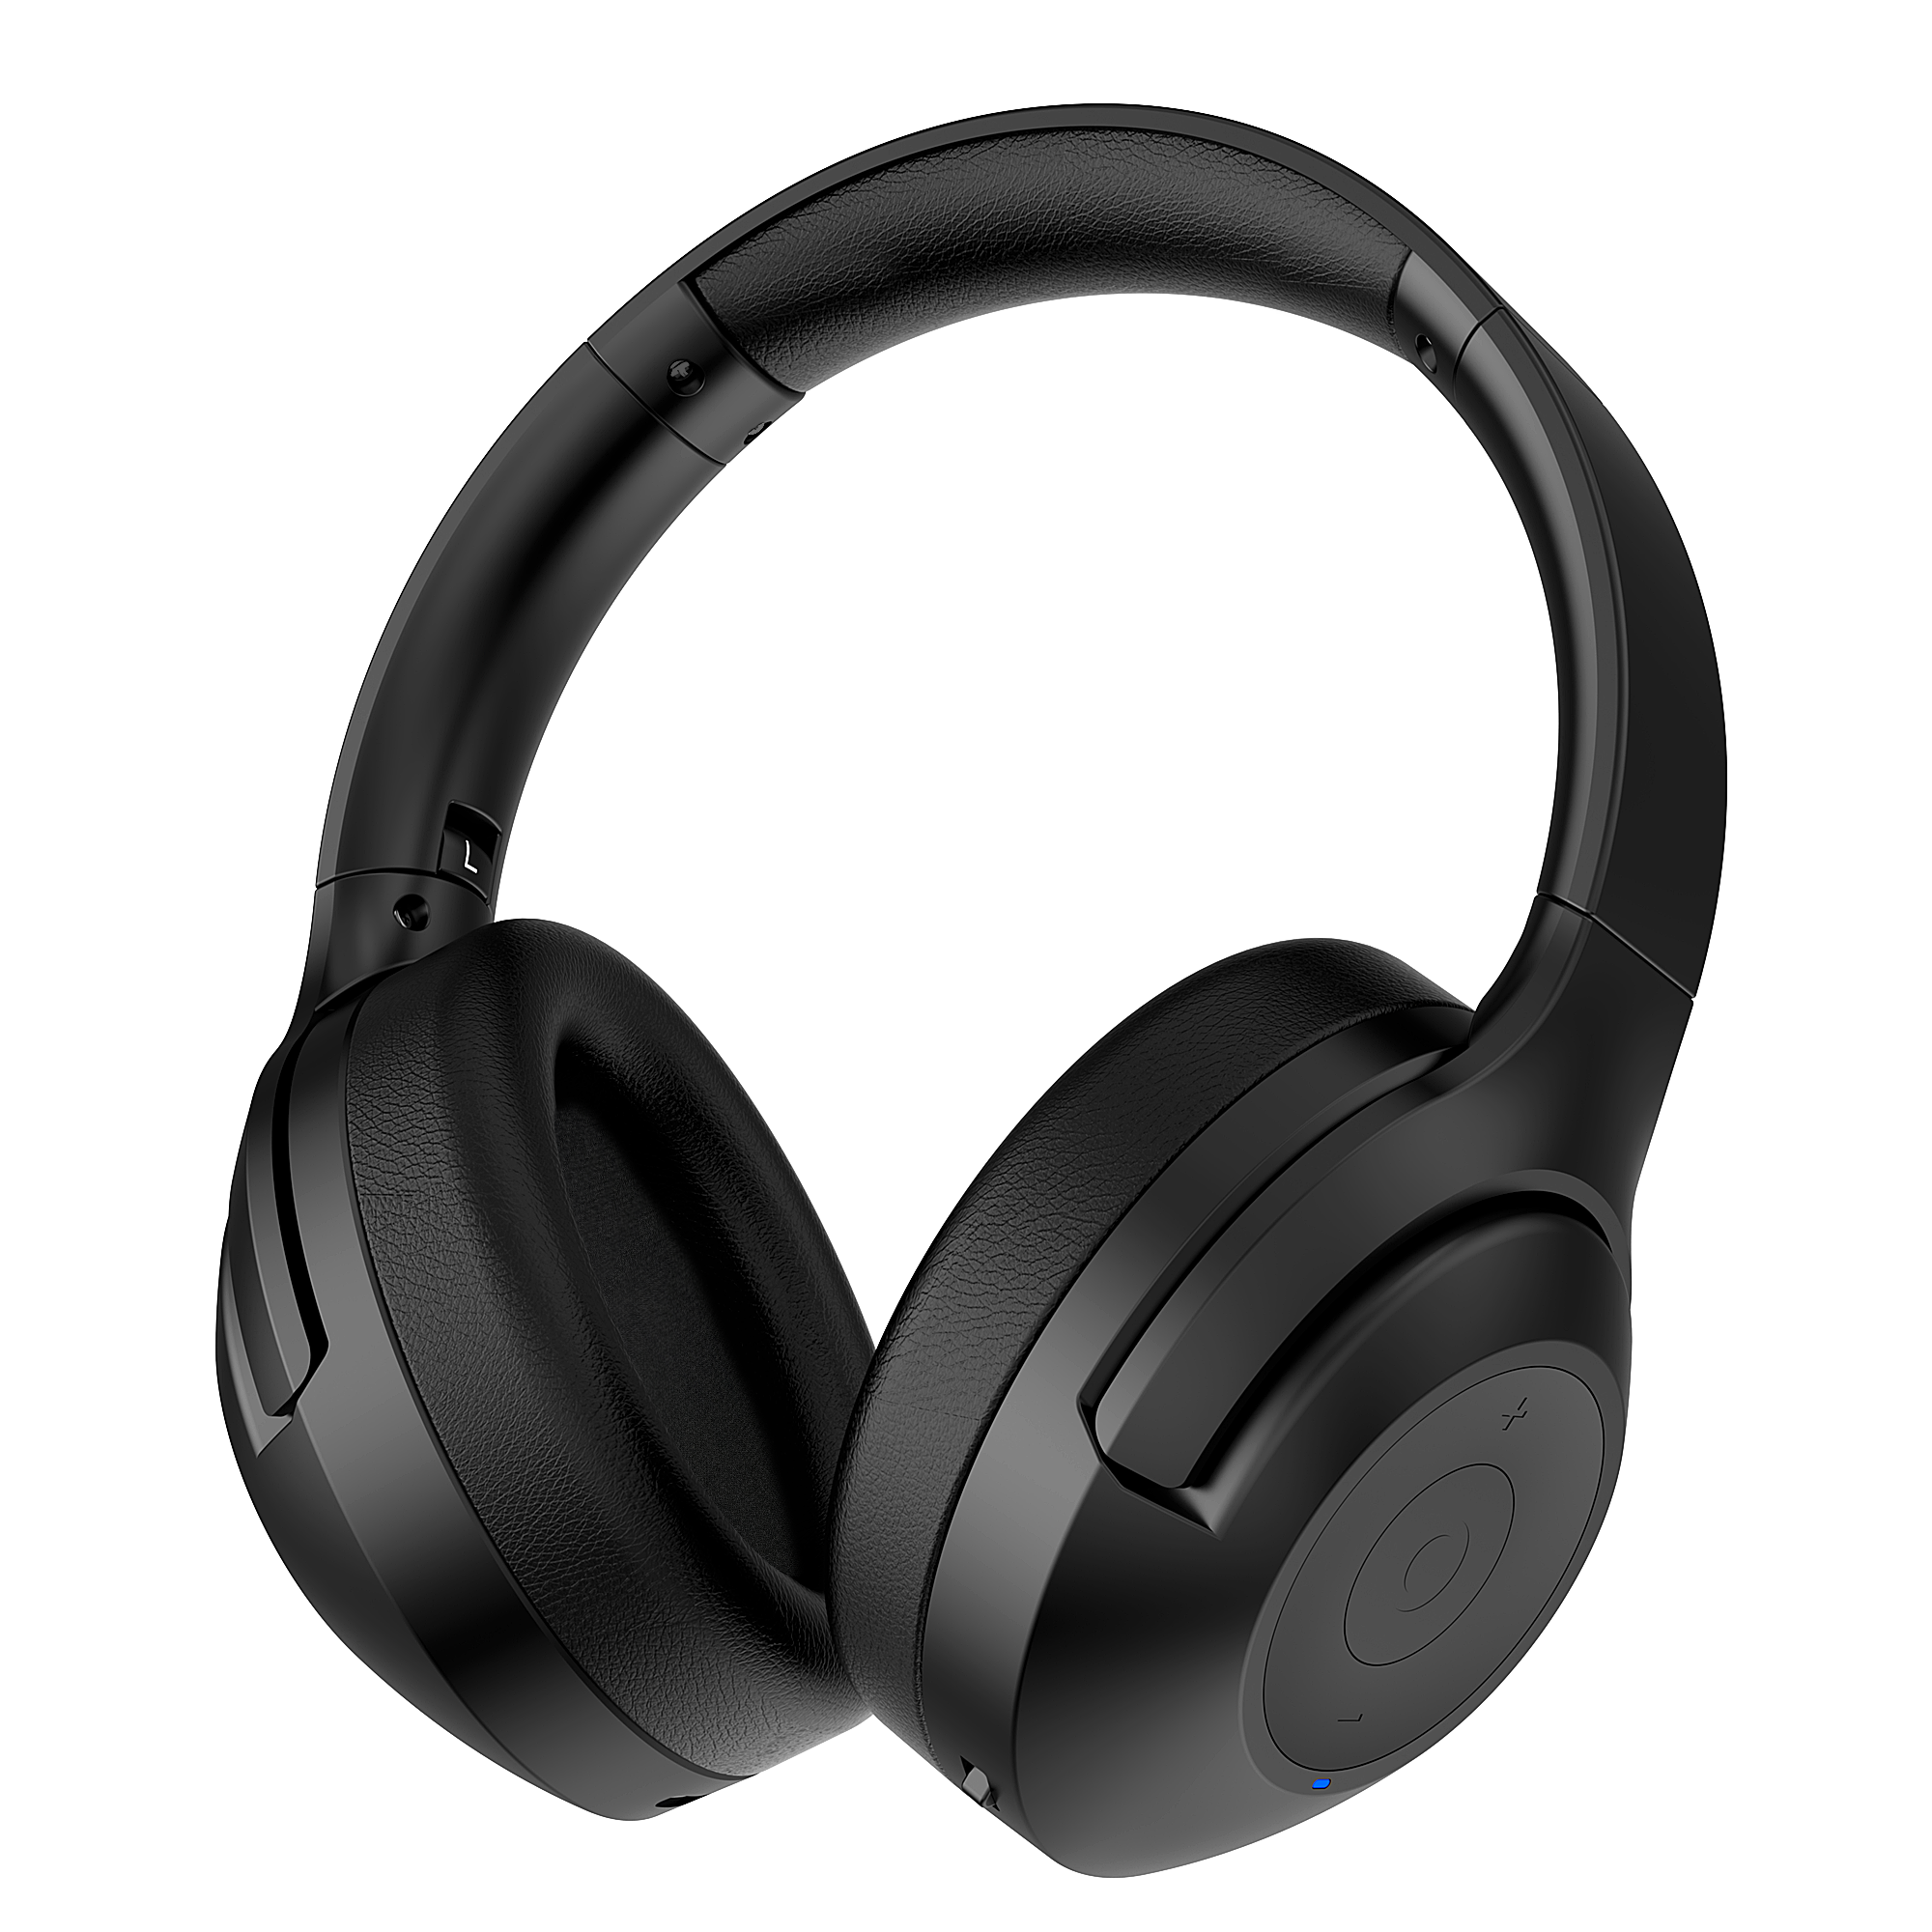 OEM-BT30NC Bluetooth headset  Noise cancellation